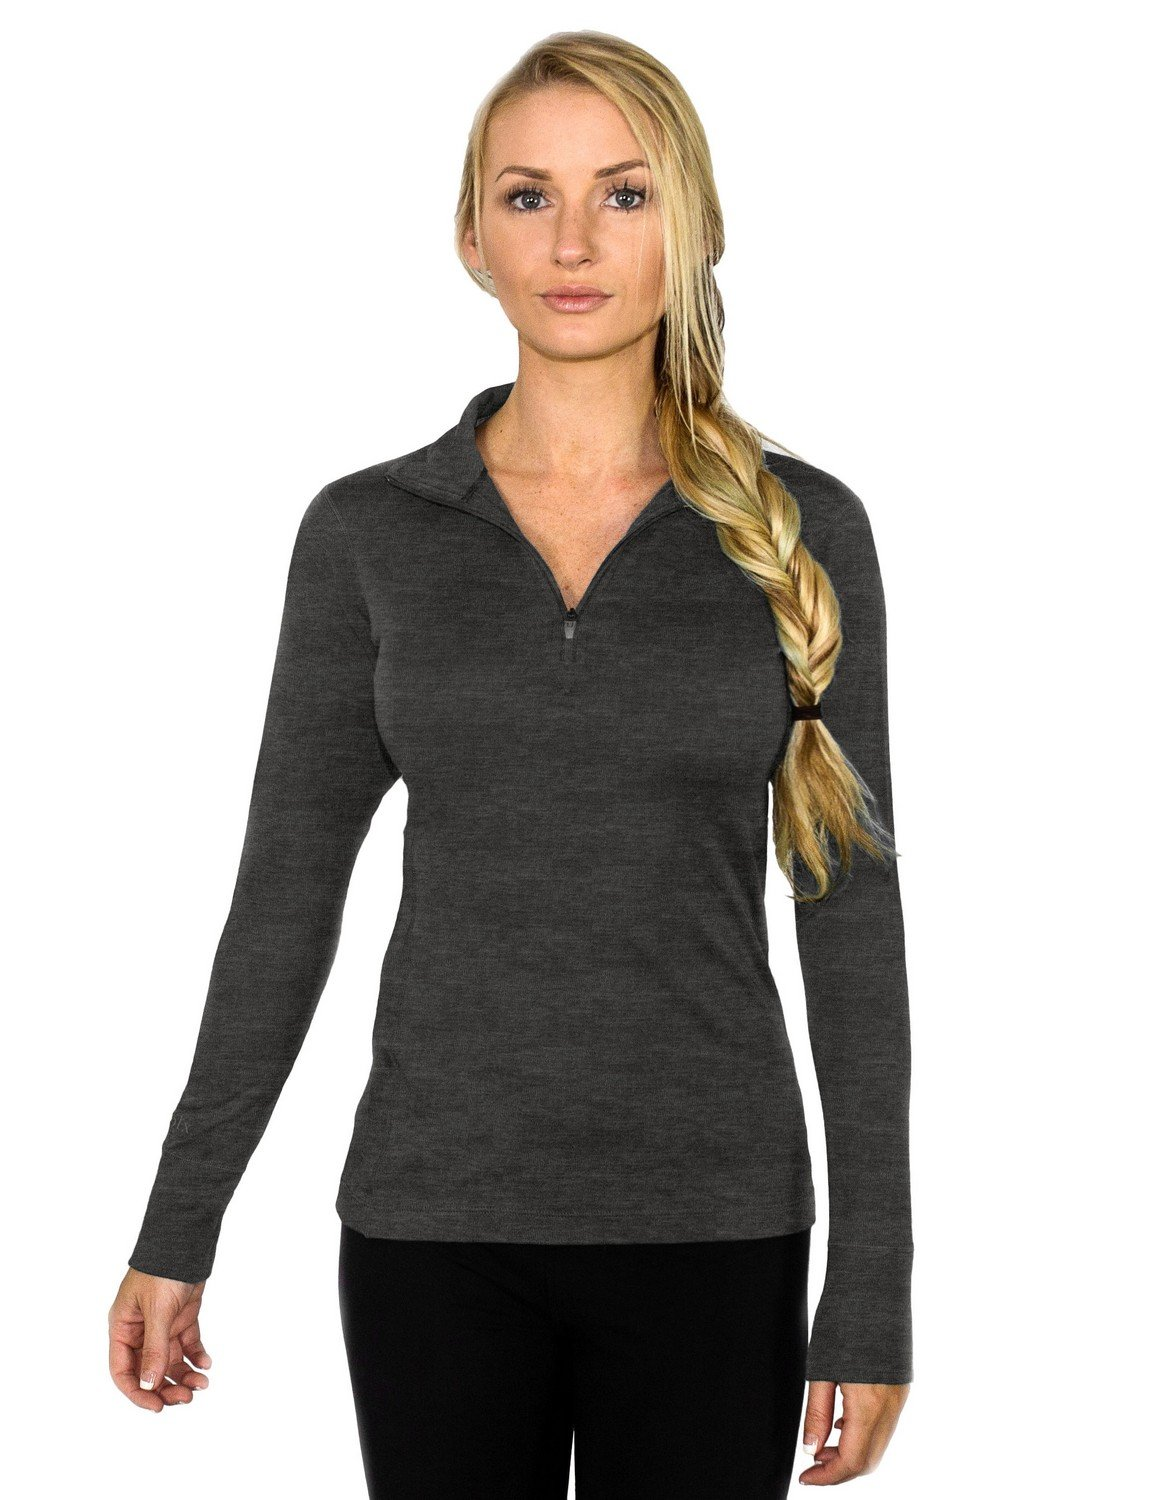 Woolx Women's Brooke 1/4 Zip Pull Over Midweight Merino Wool Base Layer Top, Charcoal Heather, Medium by WoolX